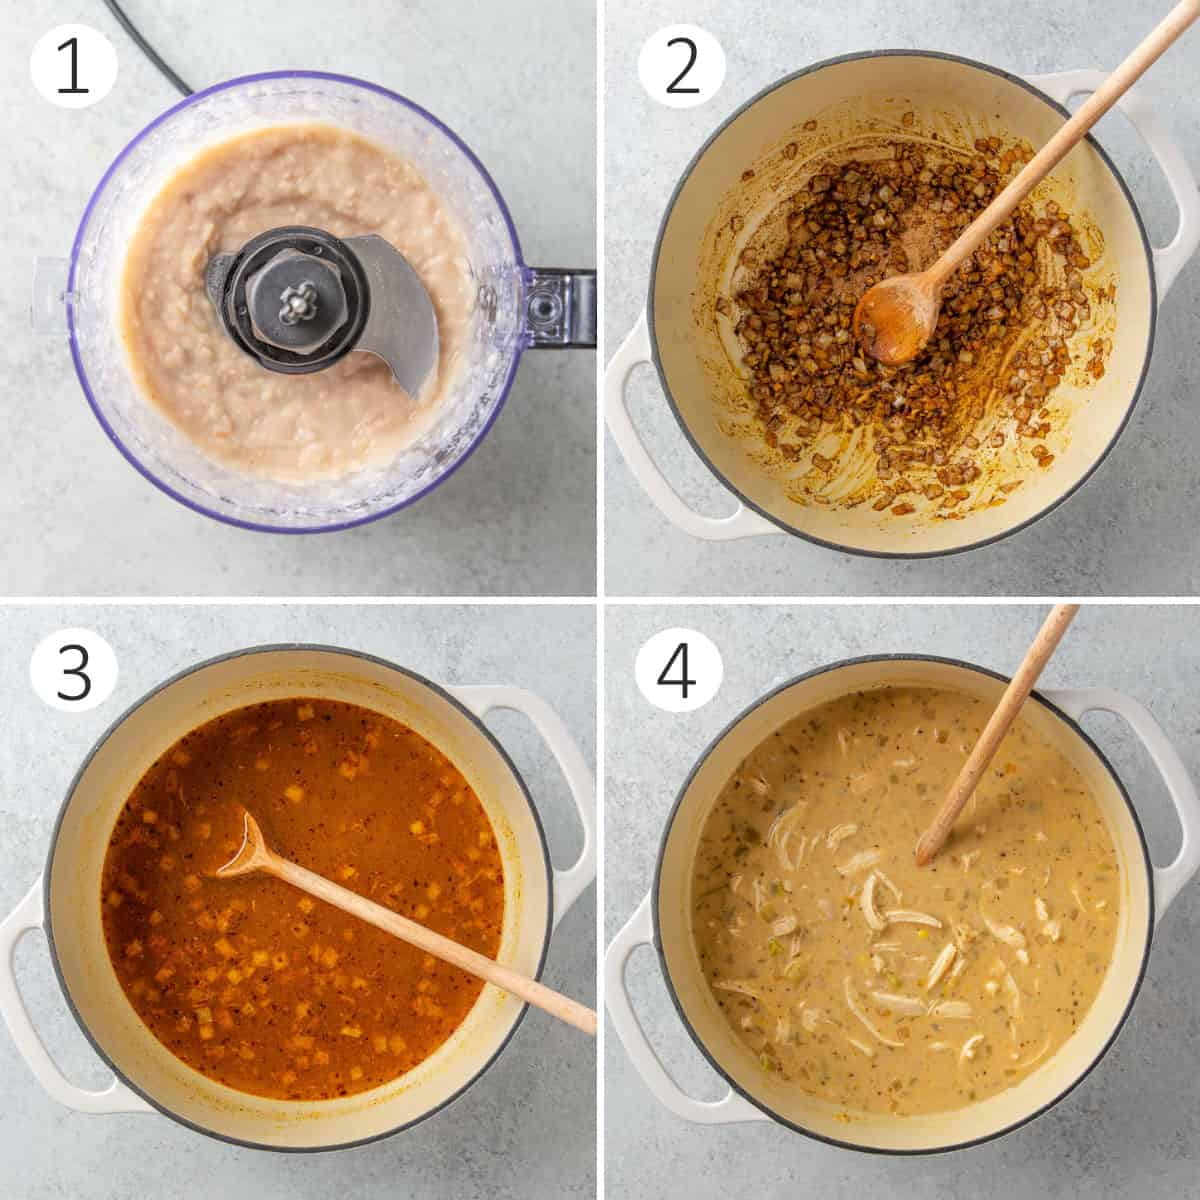 Four step by step photos showing how to make chili.